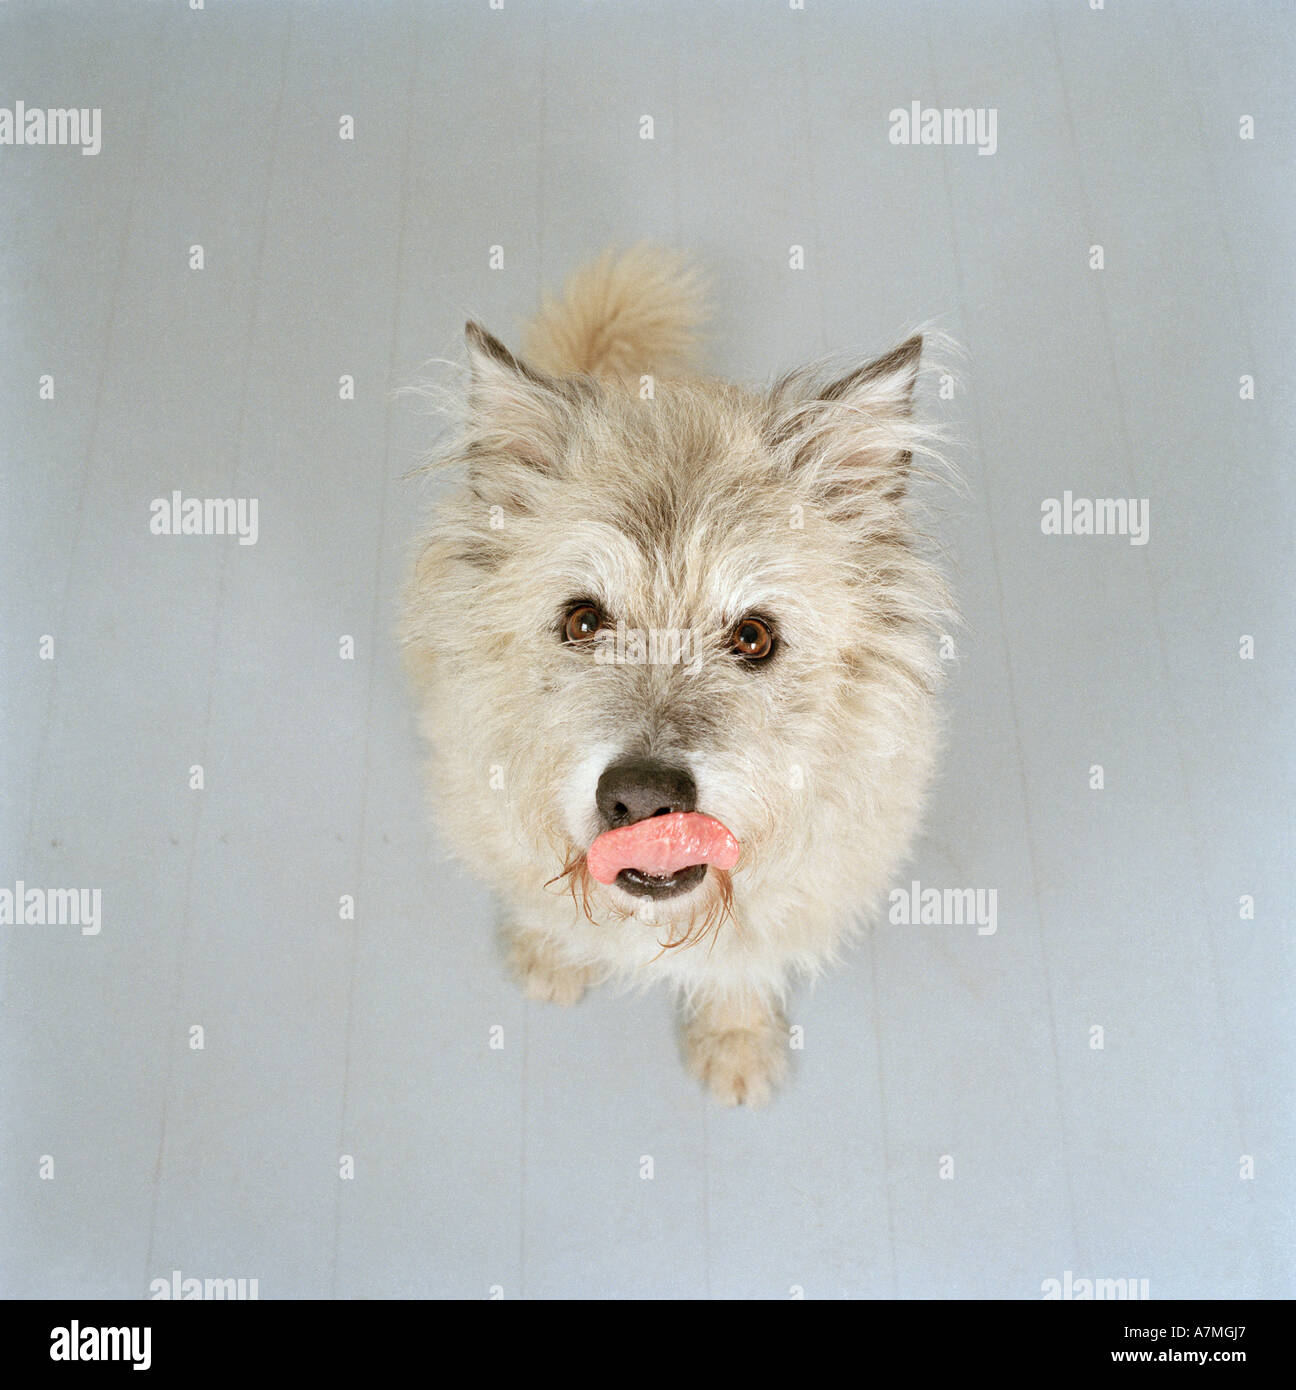 A white dog licking its nose - Stock Image